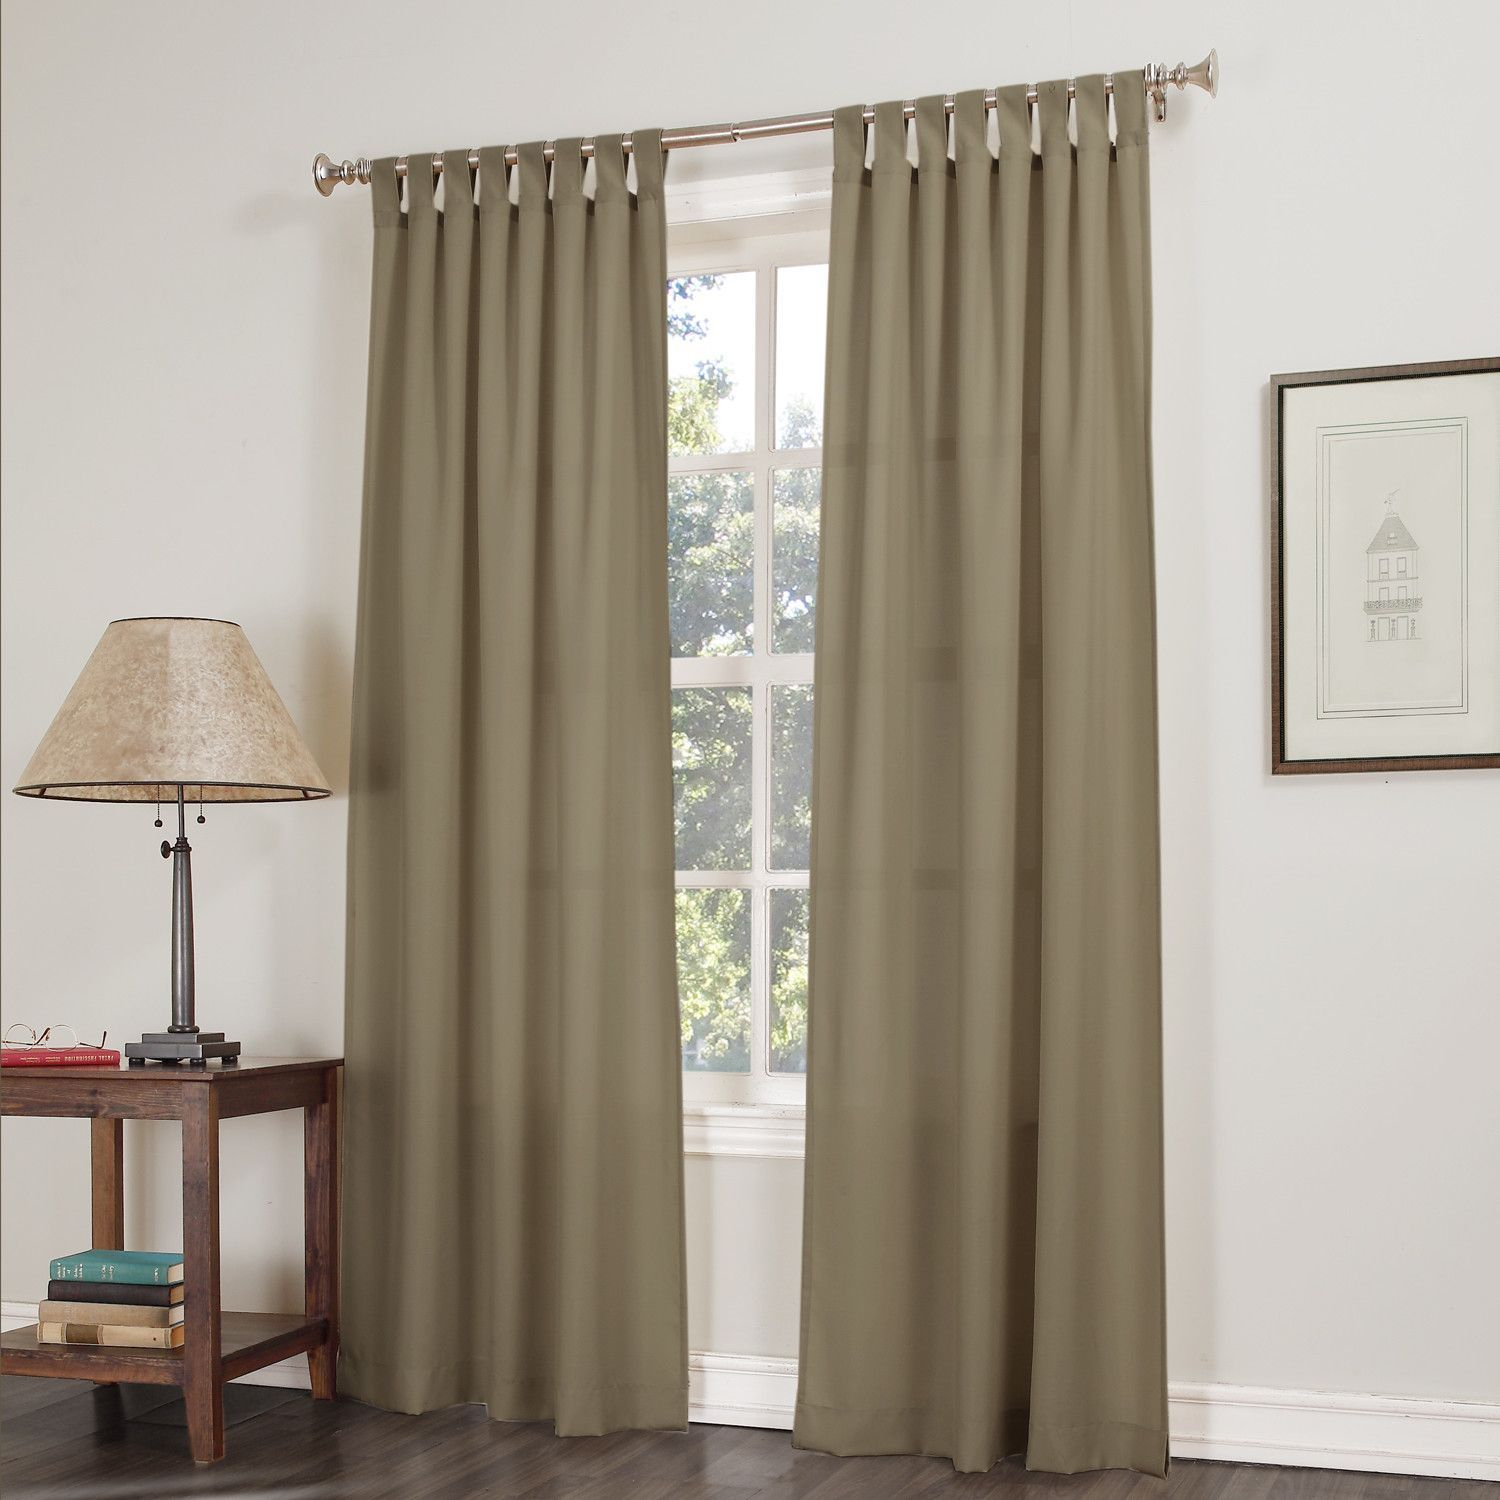 Curtains & Drapes Regarding Sugar Creek Grommet Top Loha Linen Window Curtain Panel Pairs (View 18 of 30)